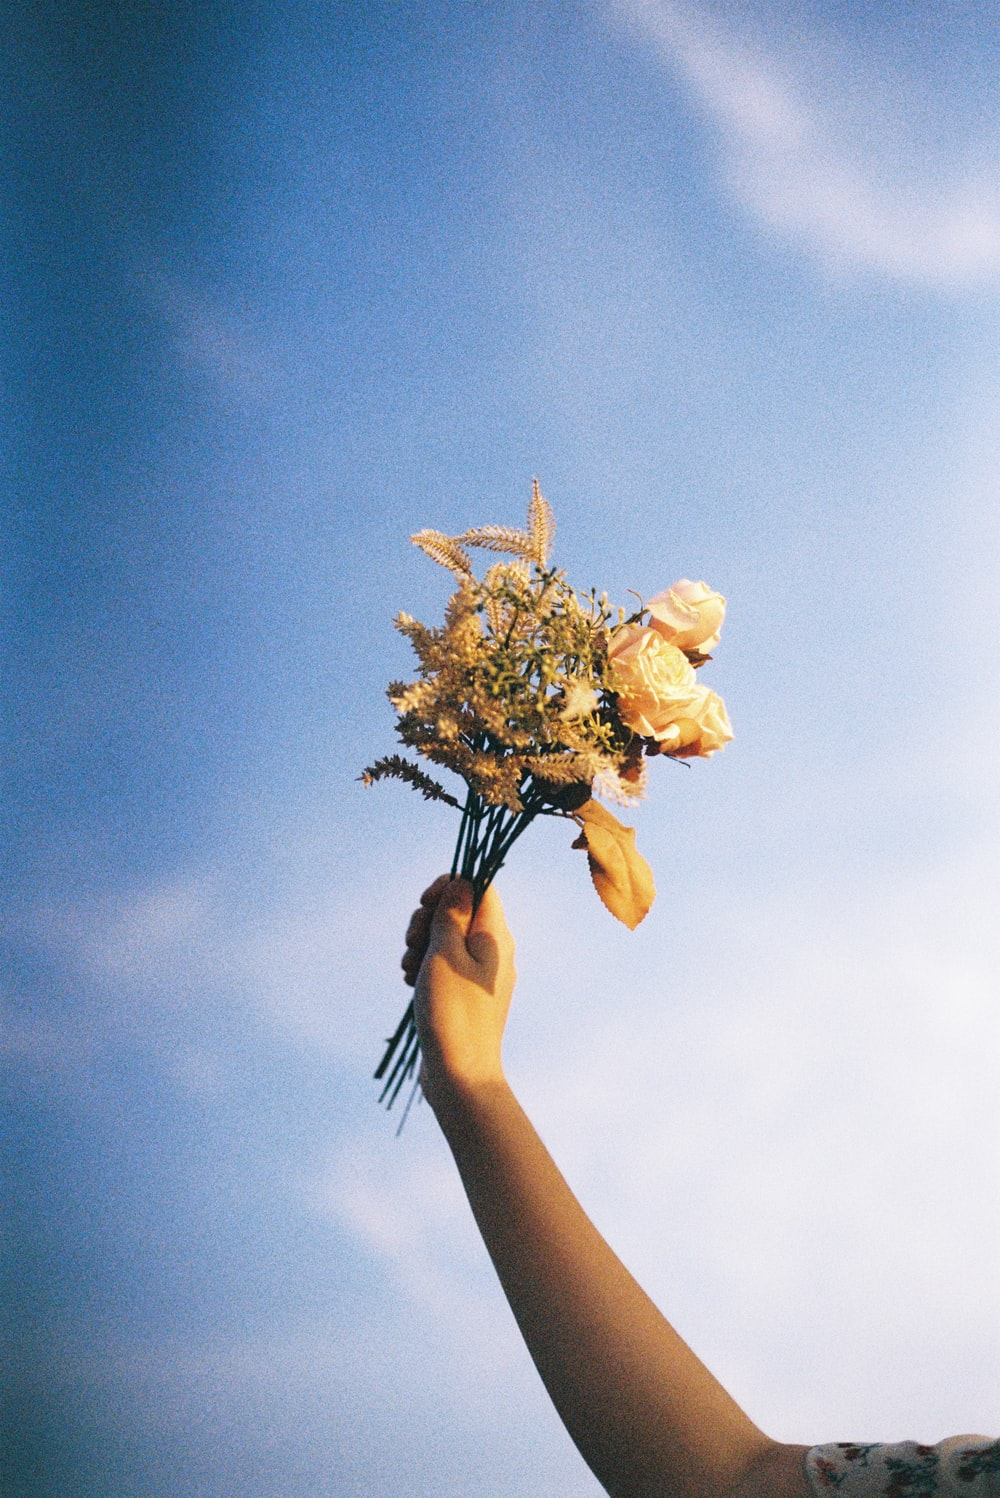 person holding yellow flower under blue sky during daytime